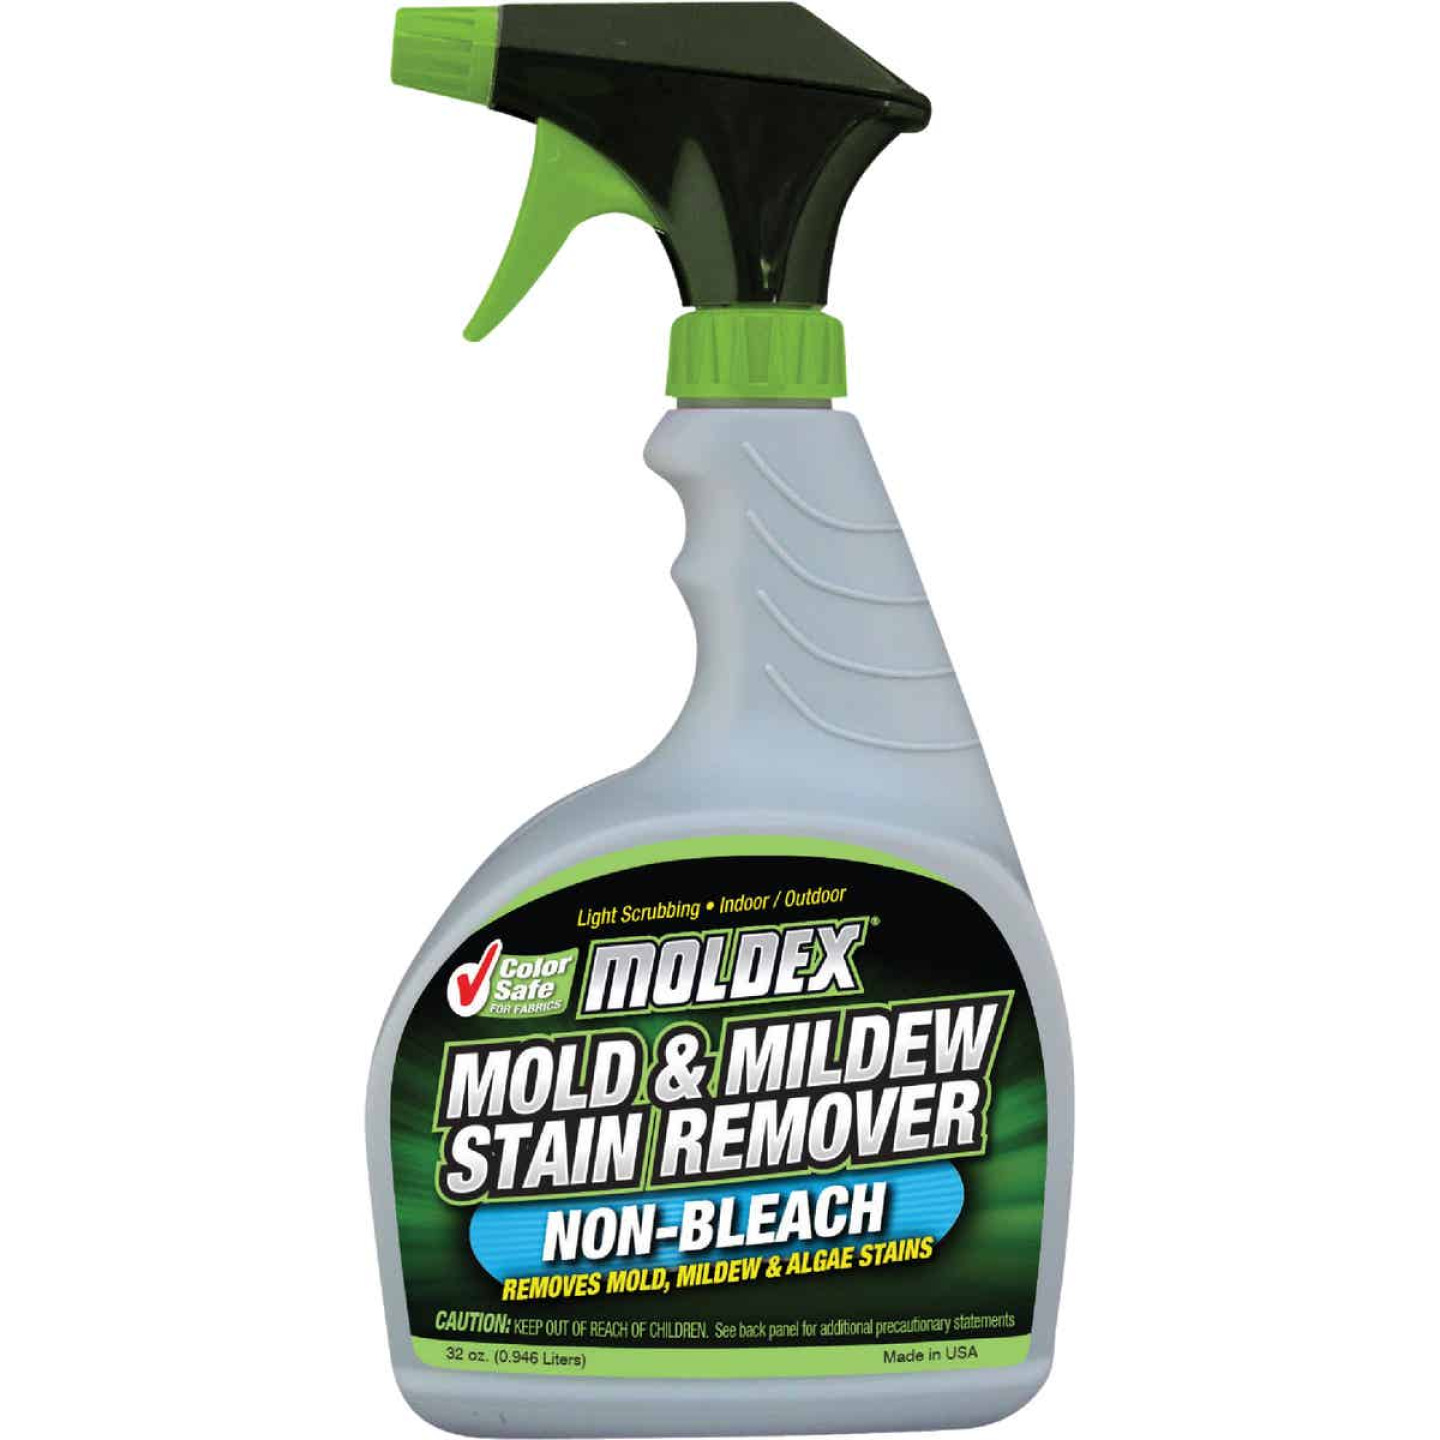 Moldex 32 Oz. Ready To Use Trigger Spray Deep Mold Stain Remover Image 1